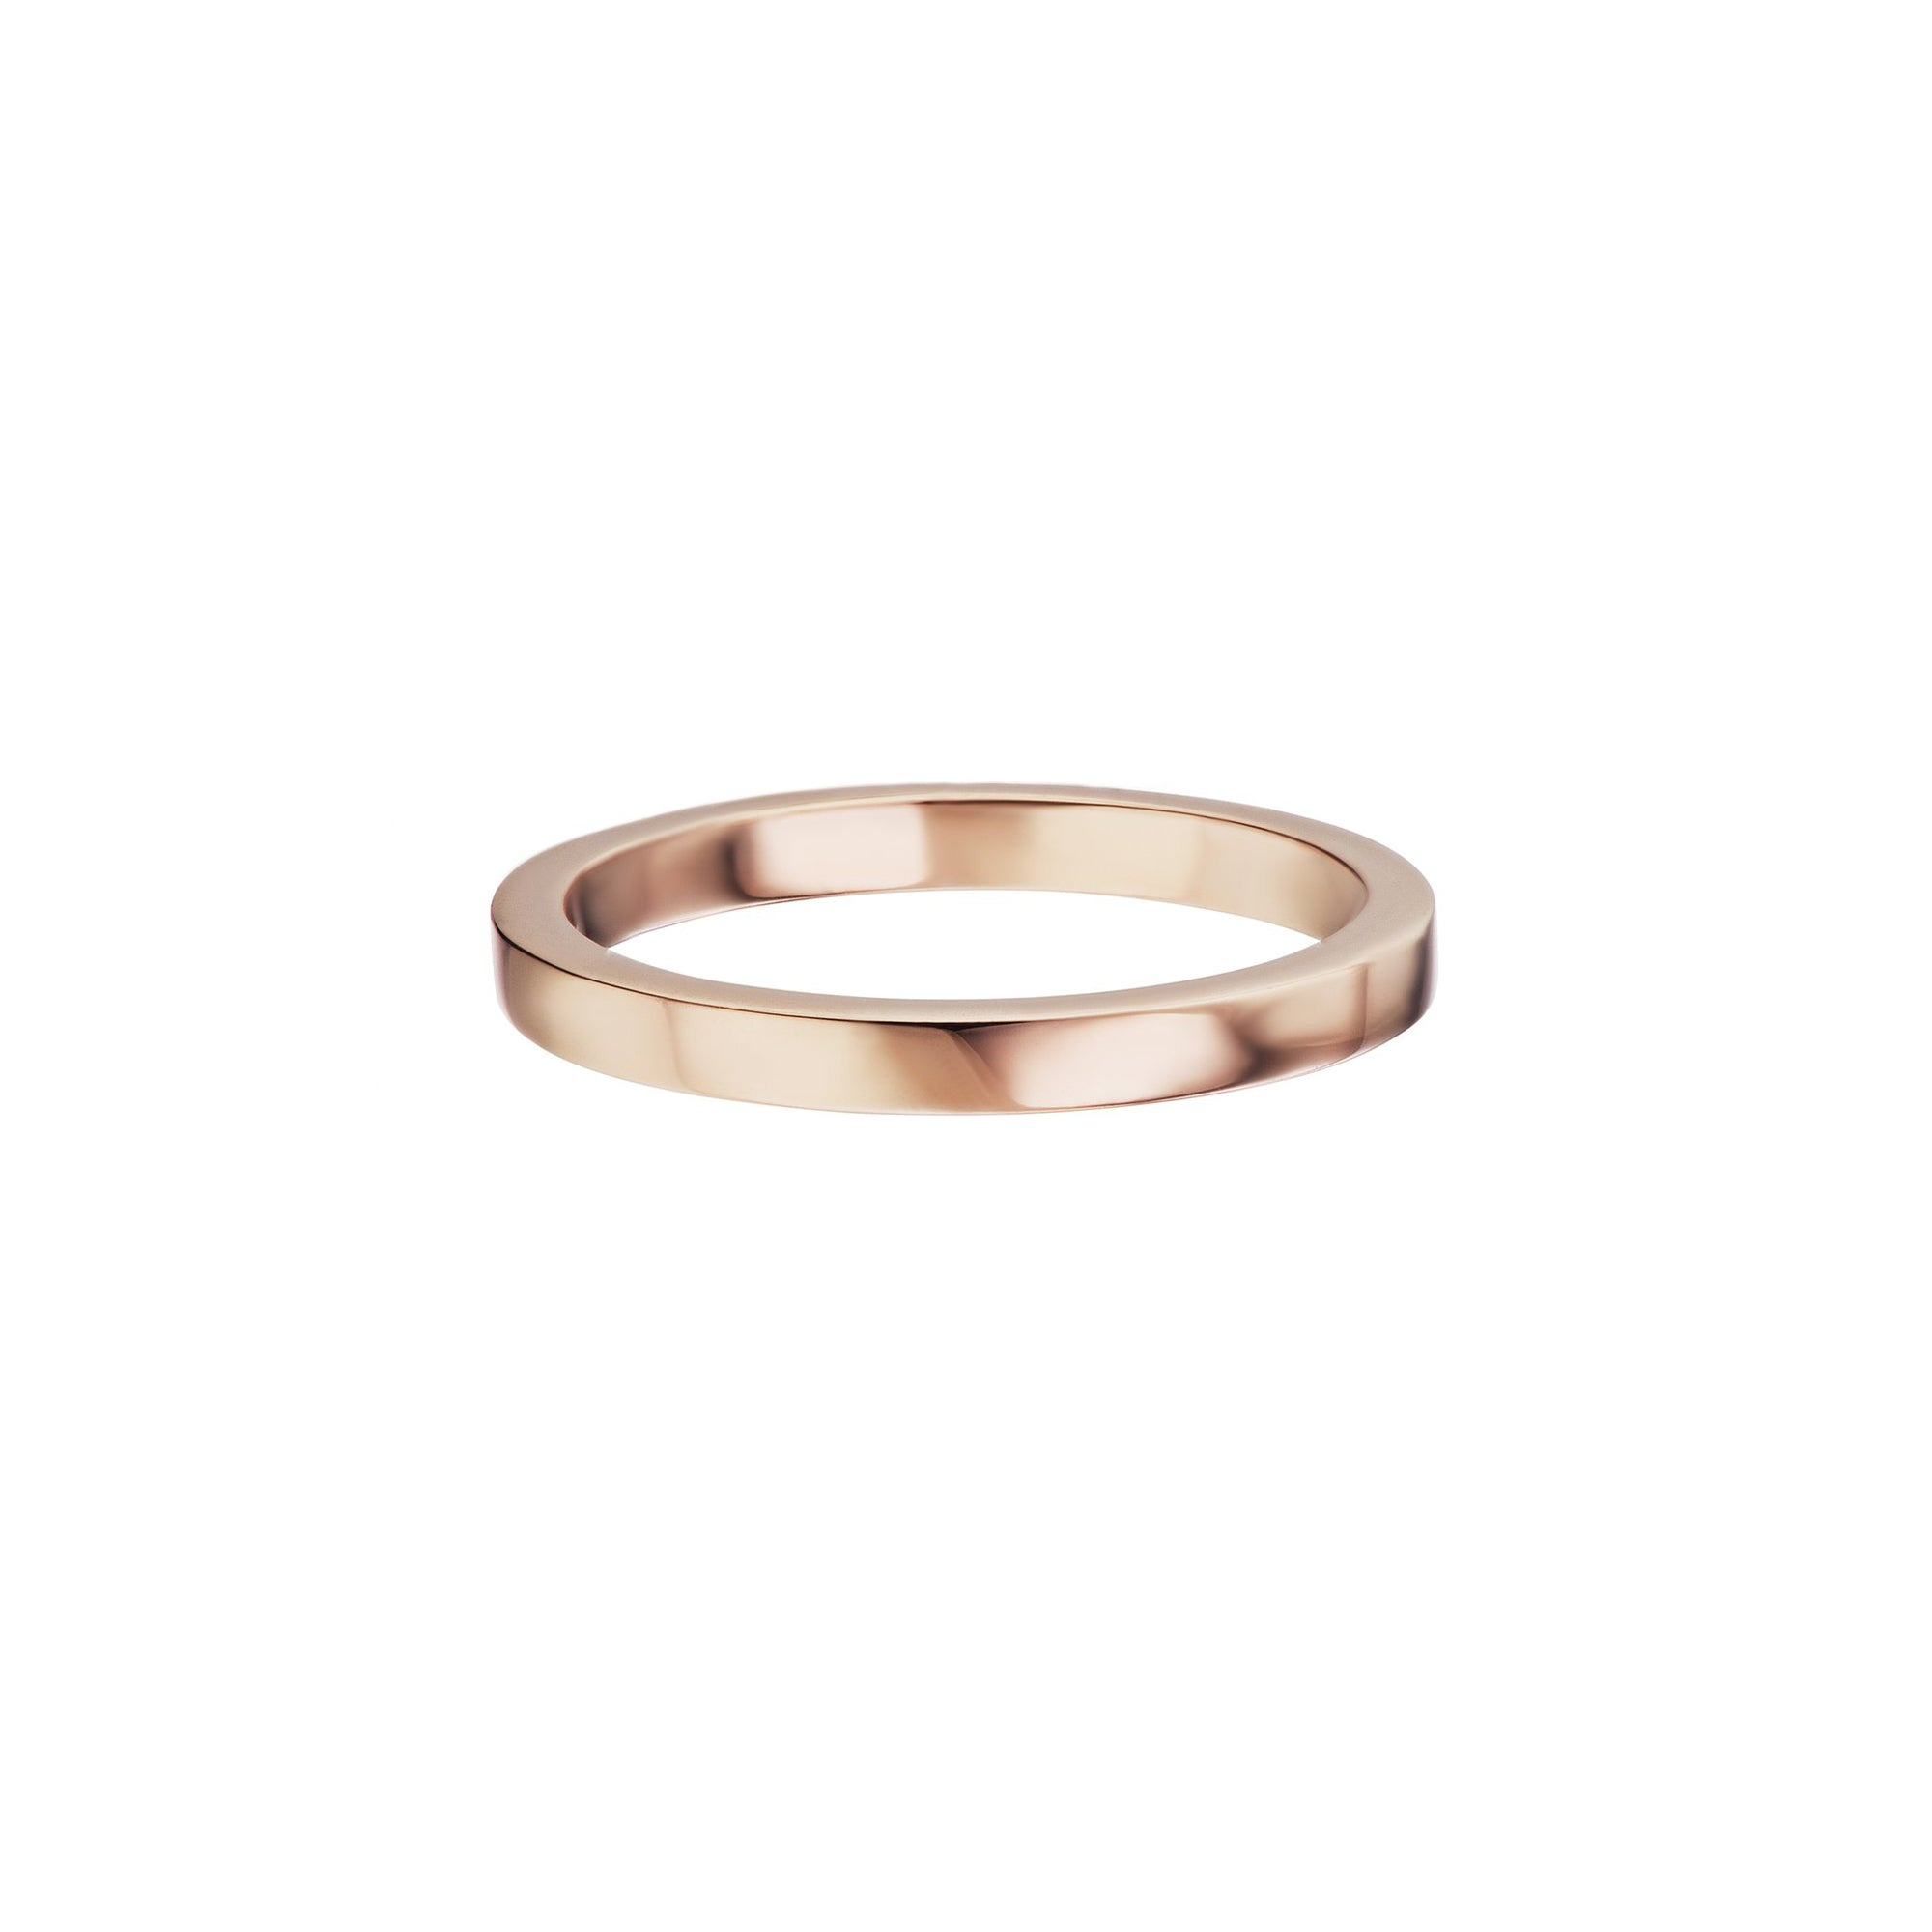 Altruist Alchemie Ring - Rose Gold - Rings - Broken English Jewelry